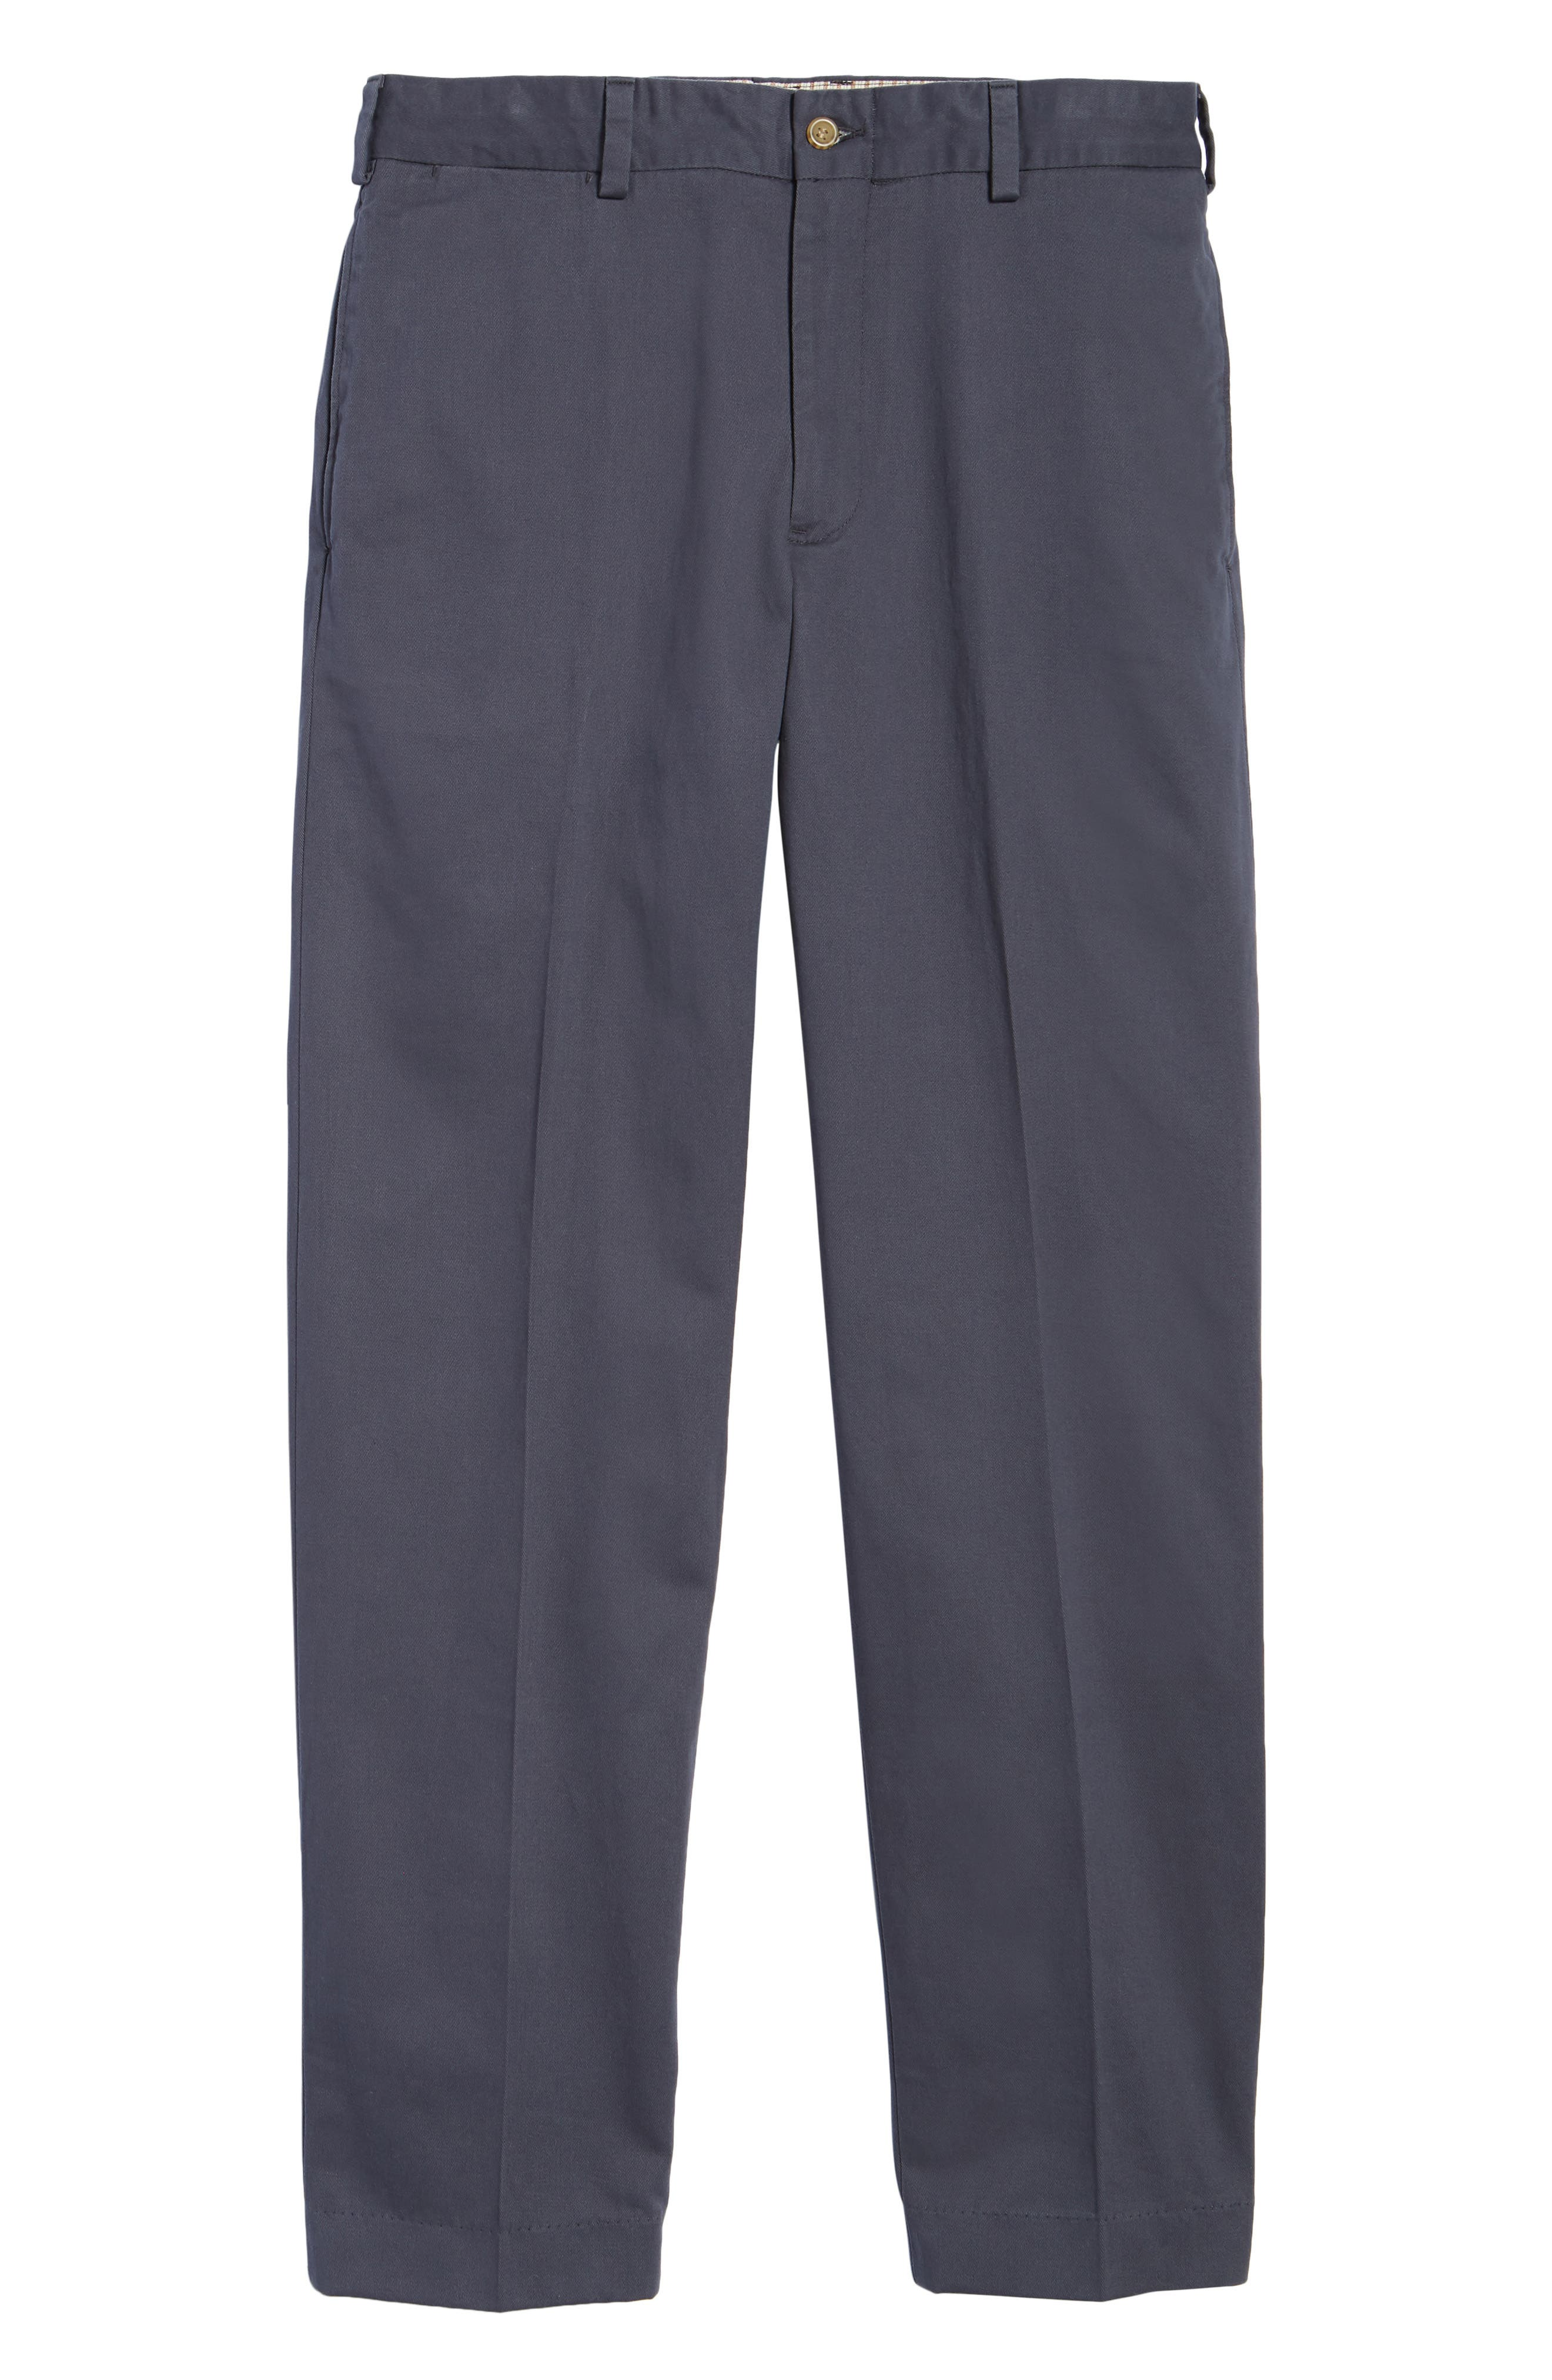 M2 Classic Fit Flat Front Vintage Twill Pants,                             Alternate thumbnail 6, color,                             Navy